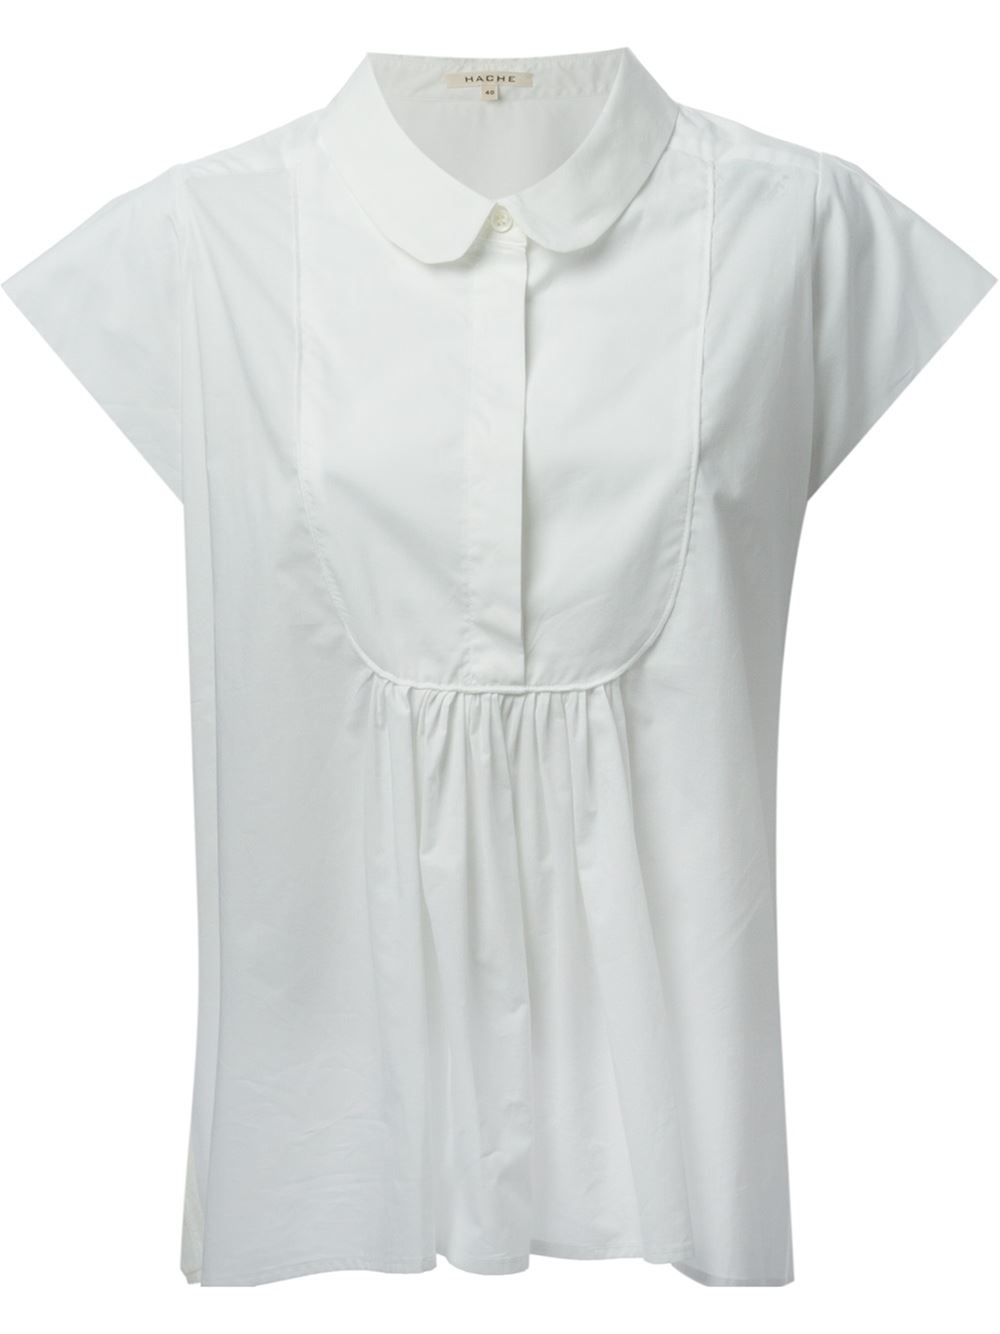 Hache peter pan collar shirt in white lyst for White cotton shirt peter pan collar